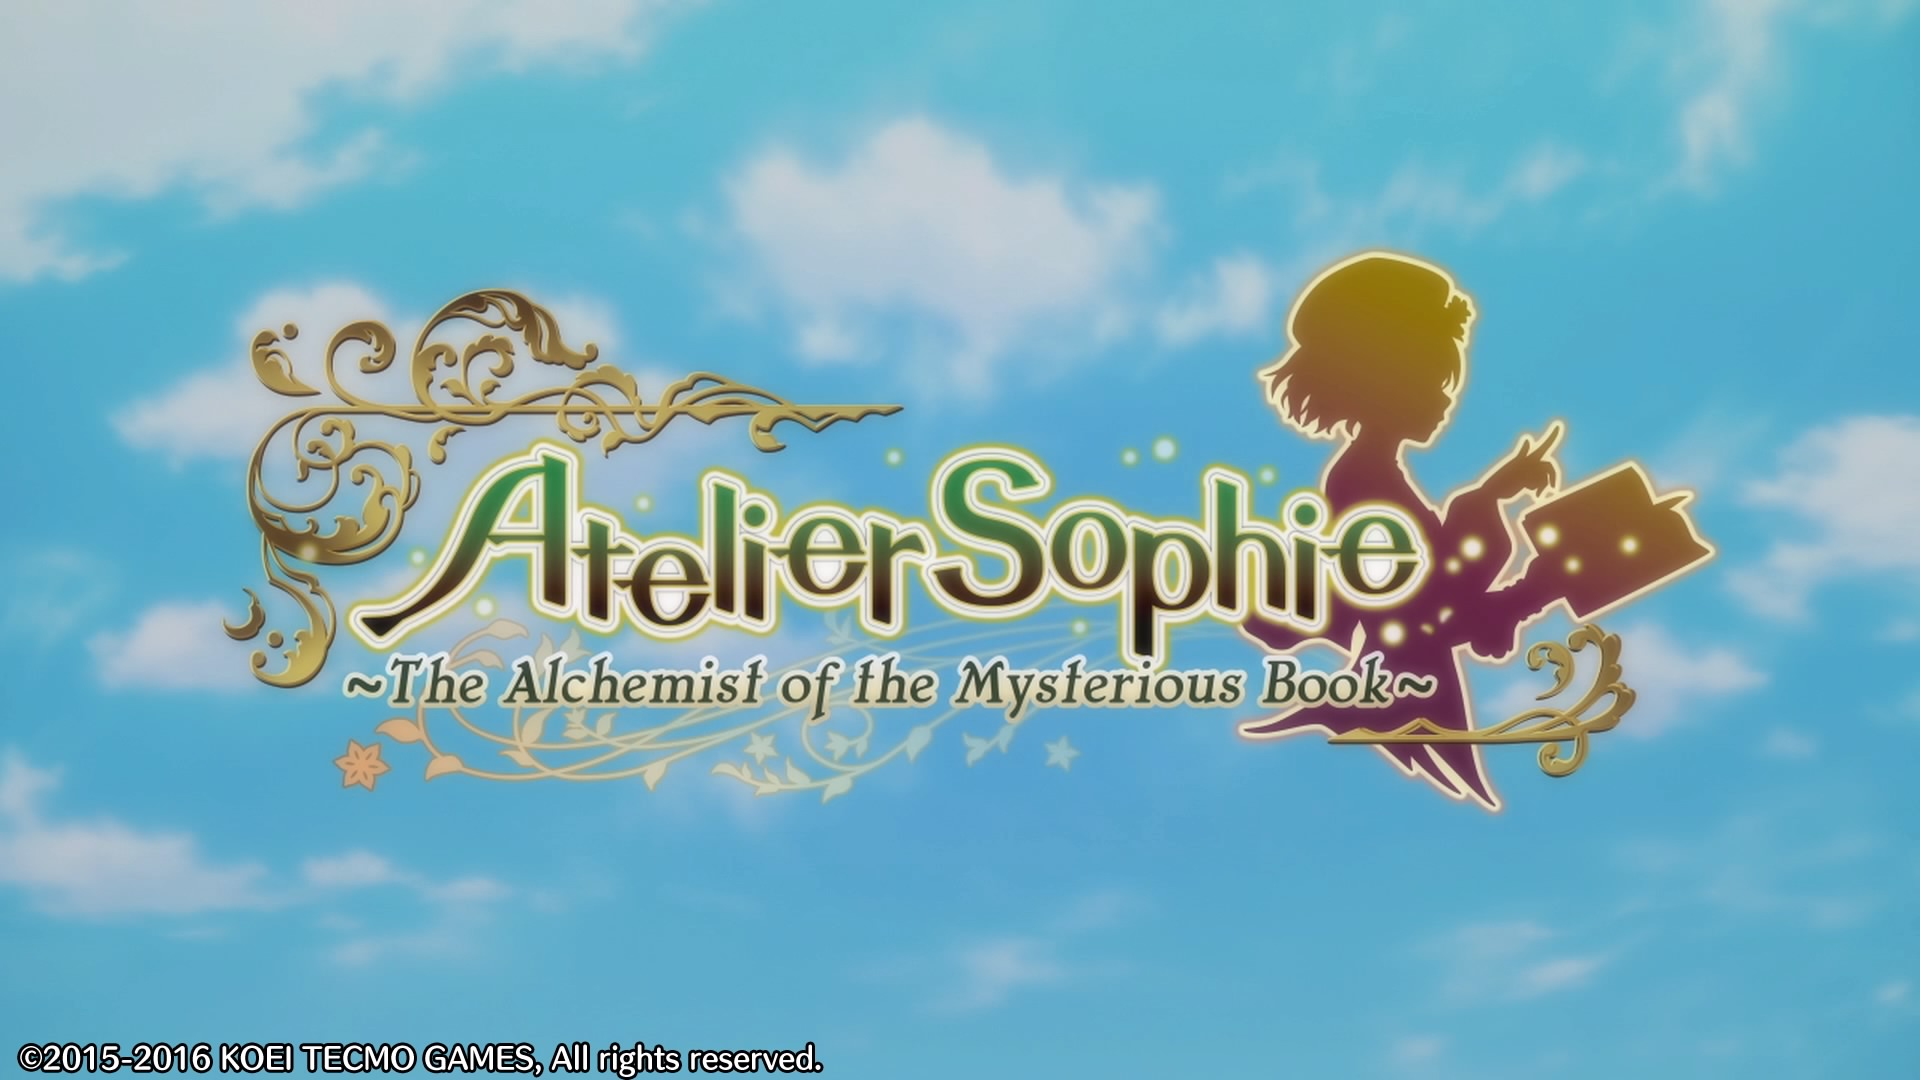 Atelier Sophie - The Alchemist of the Mysterious Book Logo du jeu sur fond ciel bleu